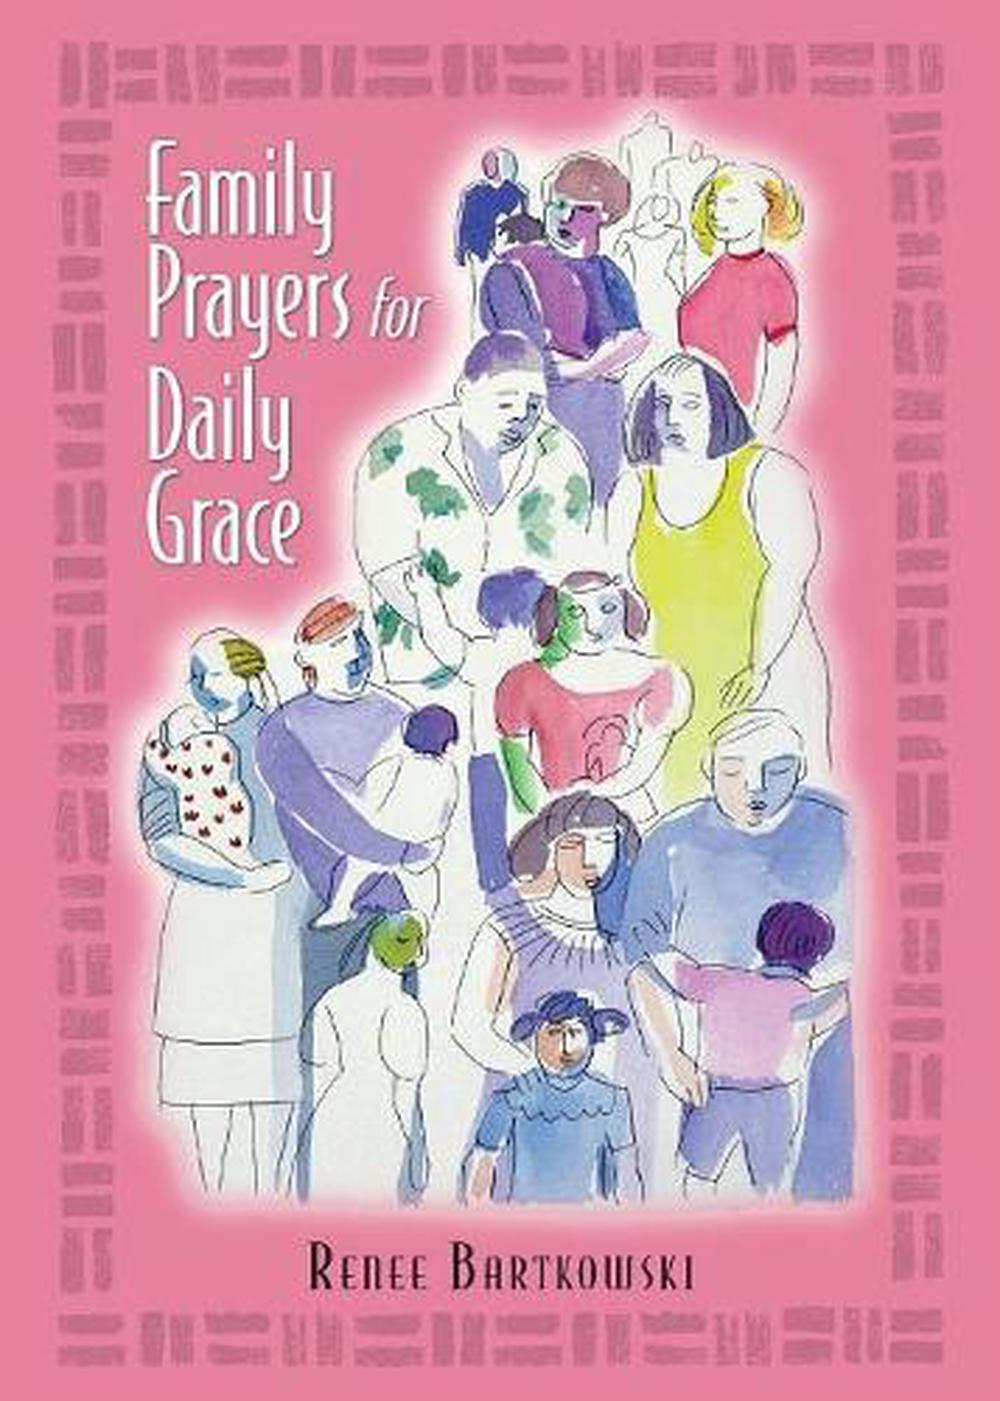 Family Prayers for Daily Grace by Renee Bartkowski